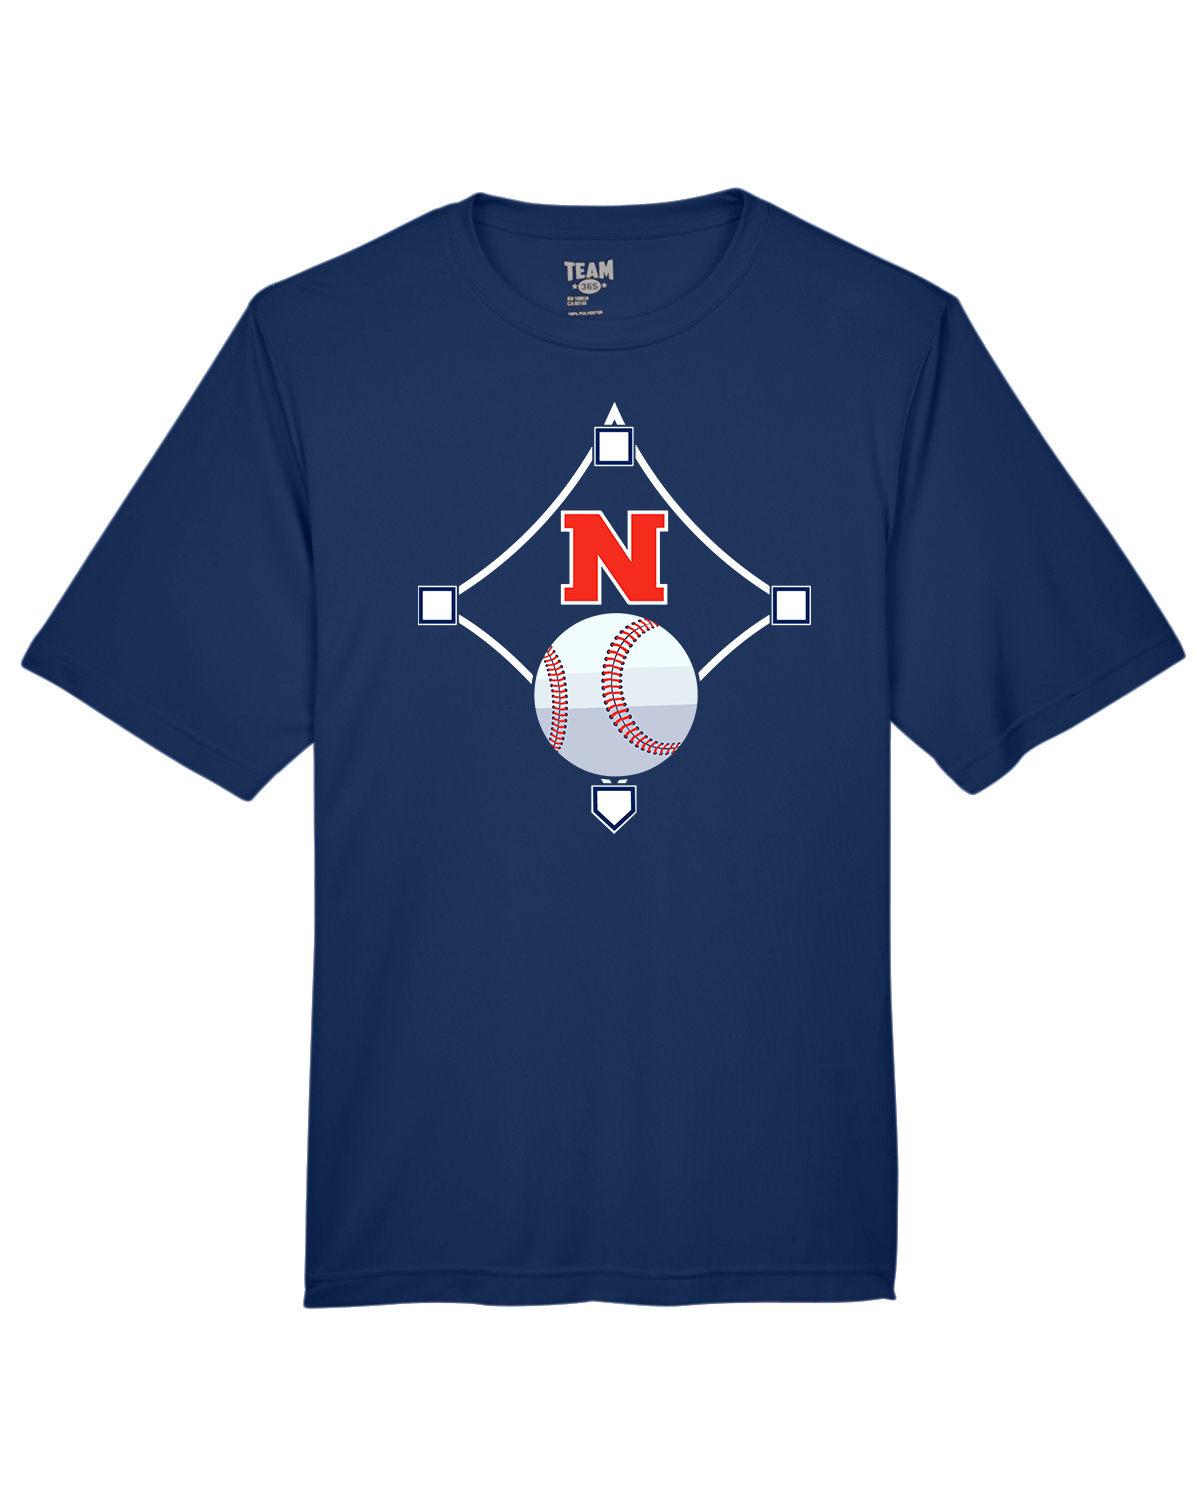 Navy Performance T-Shirt (Youth & Adult) - From $15